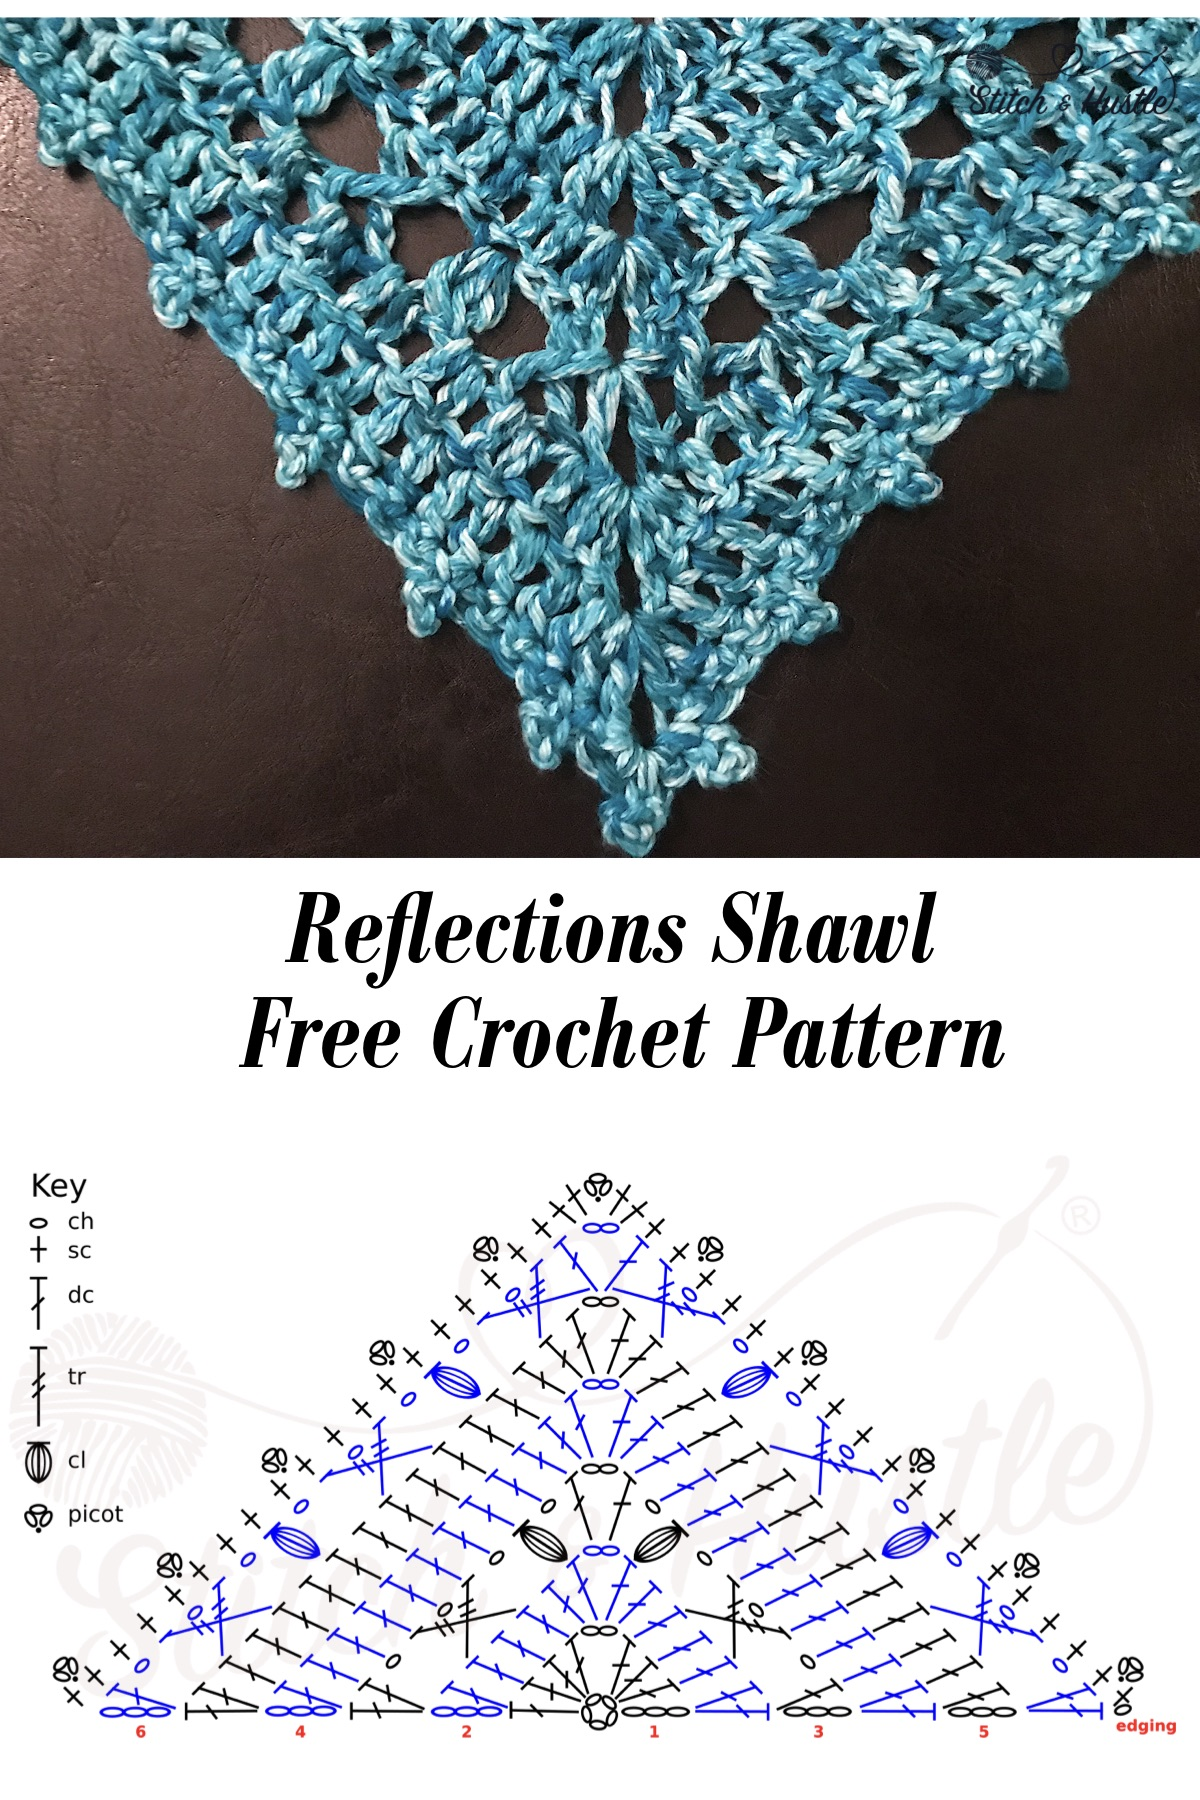 Reflections_Shawl_Free_Crochet_Pattern_1b.jpg